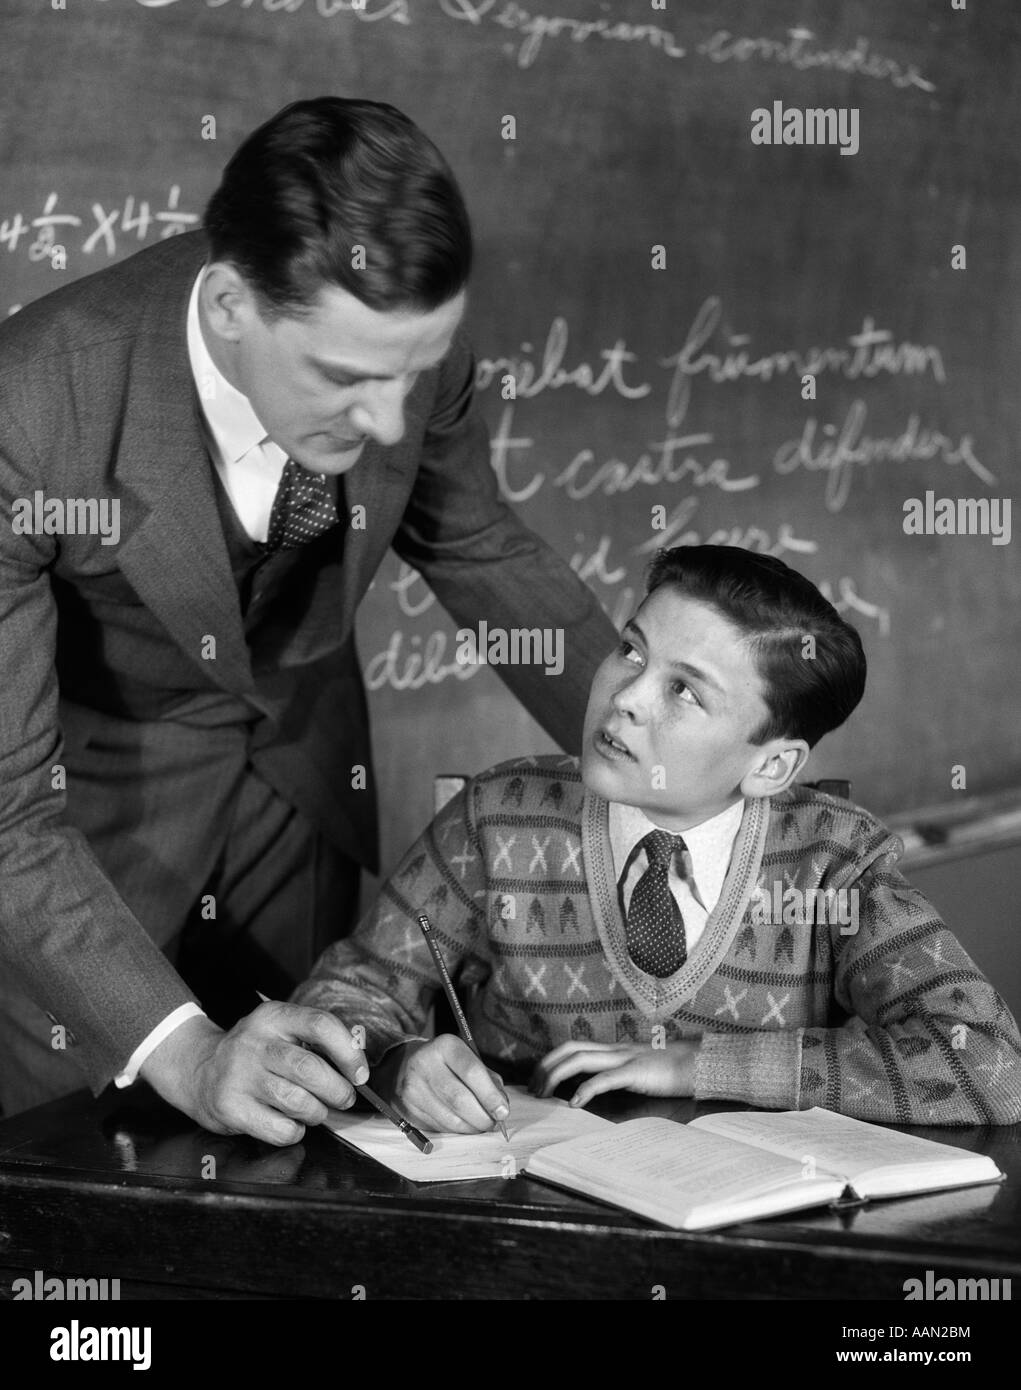 1920s CLASSROOM MALE TEACHER HELPING BOY AT DESK - BLACKBOARD IN BACKGROUND - Stock Image